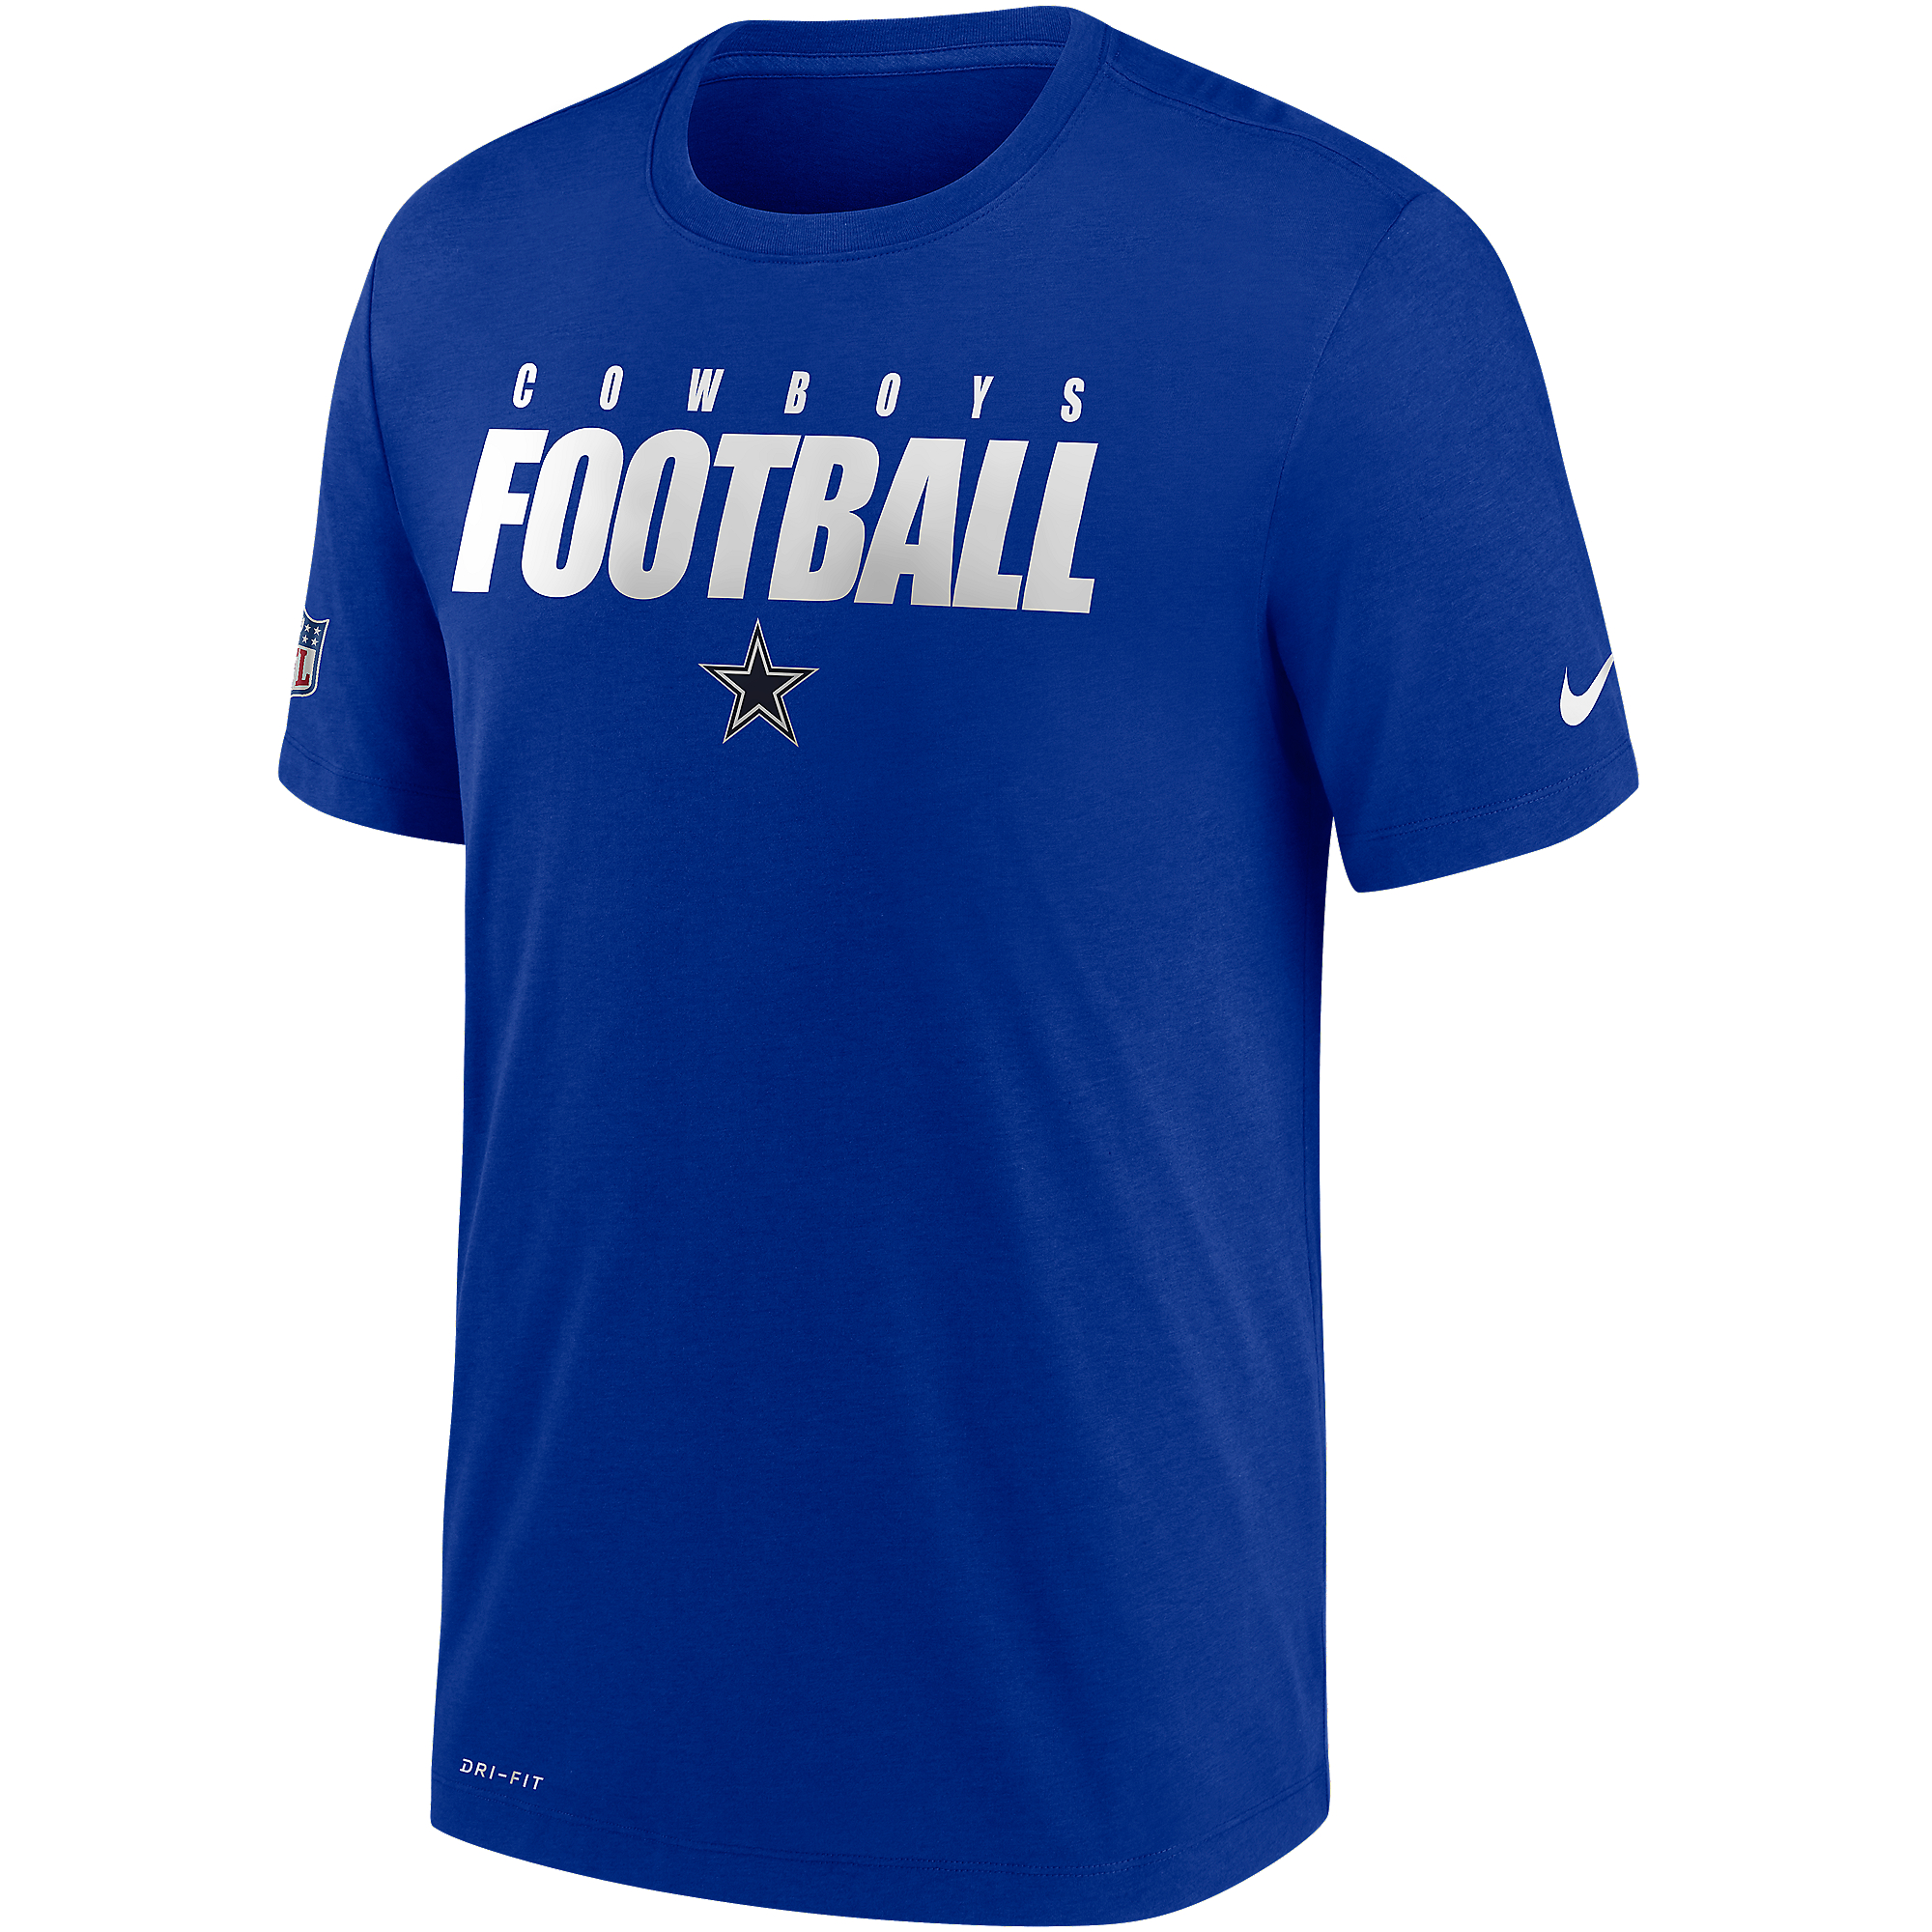 Dallas Cowboys Nike Mens Football All Dri-FIT Short Sleeve T-Shirt